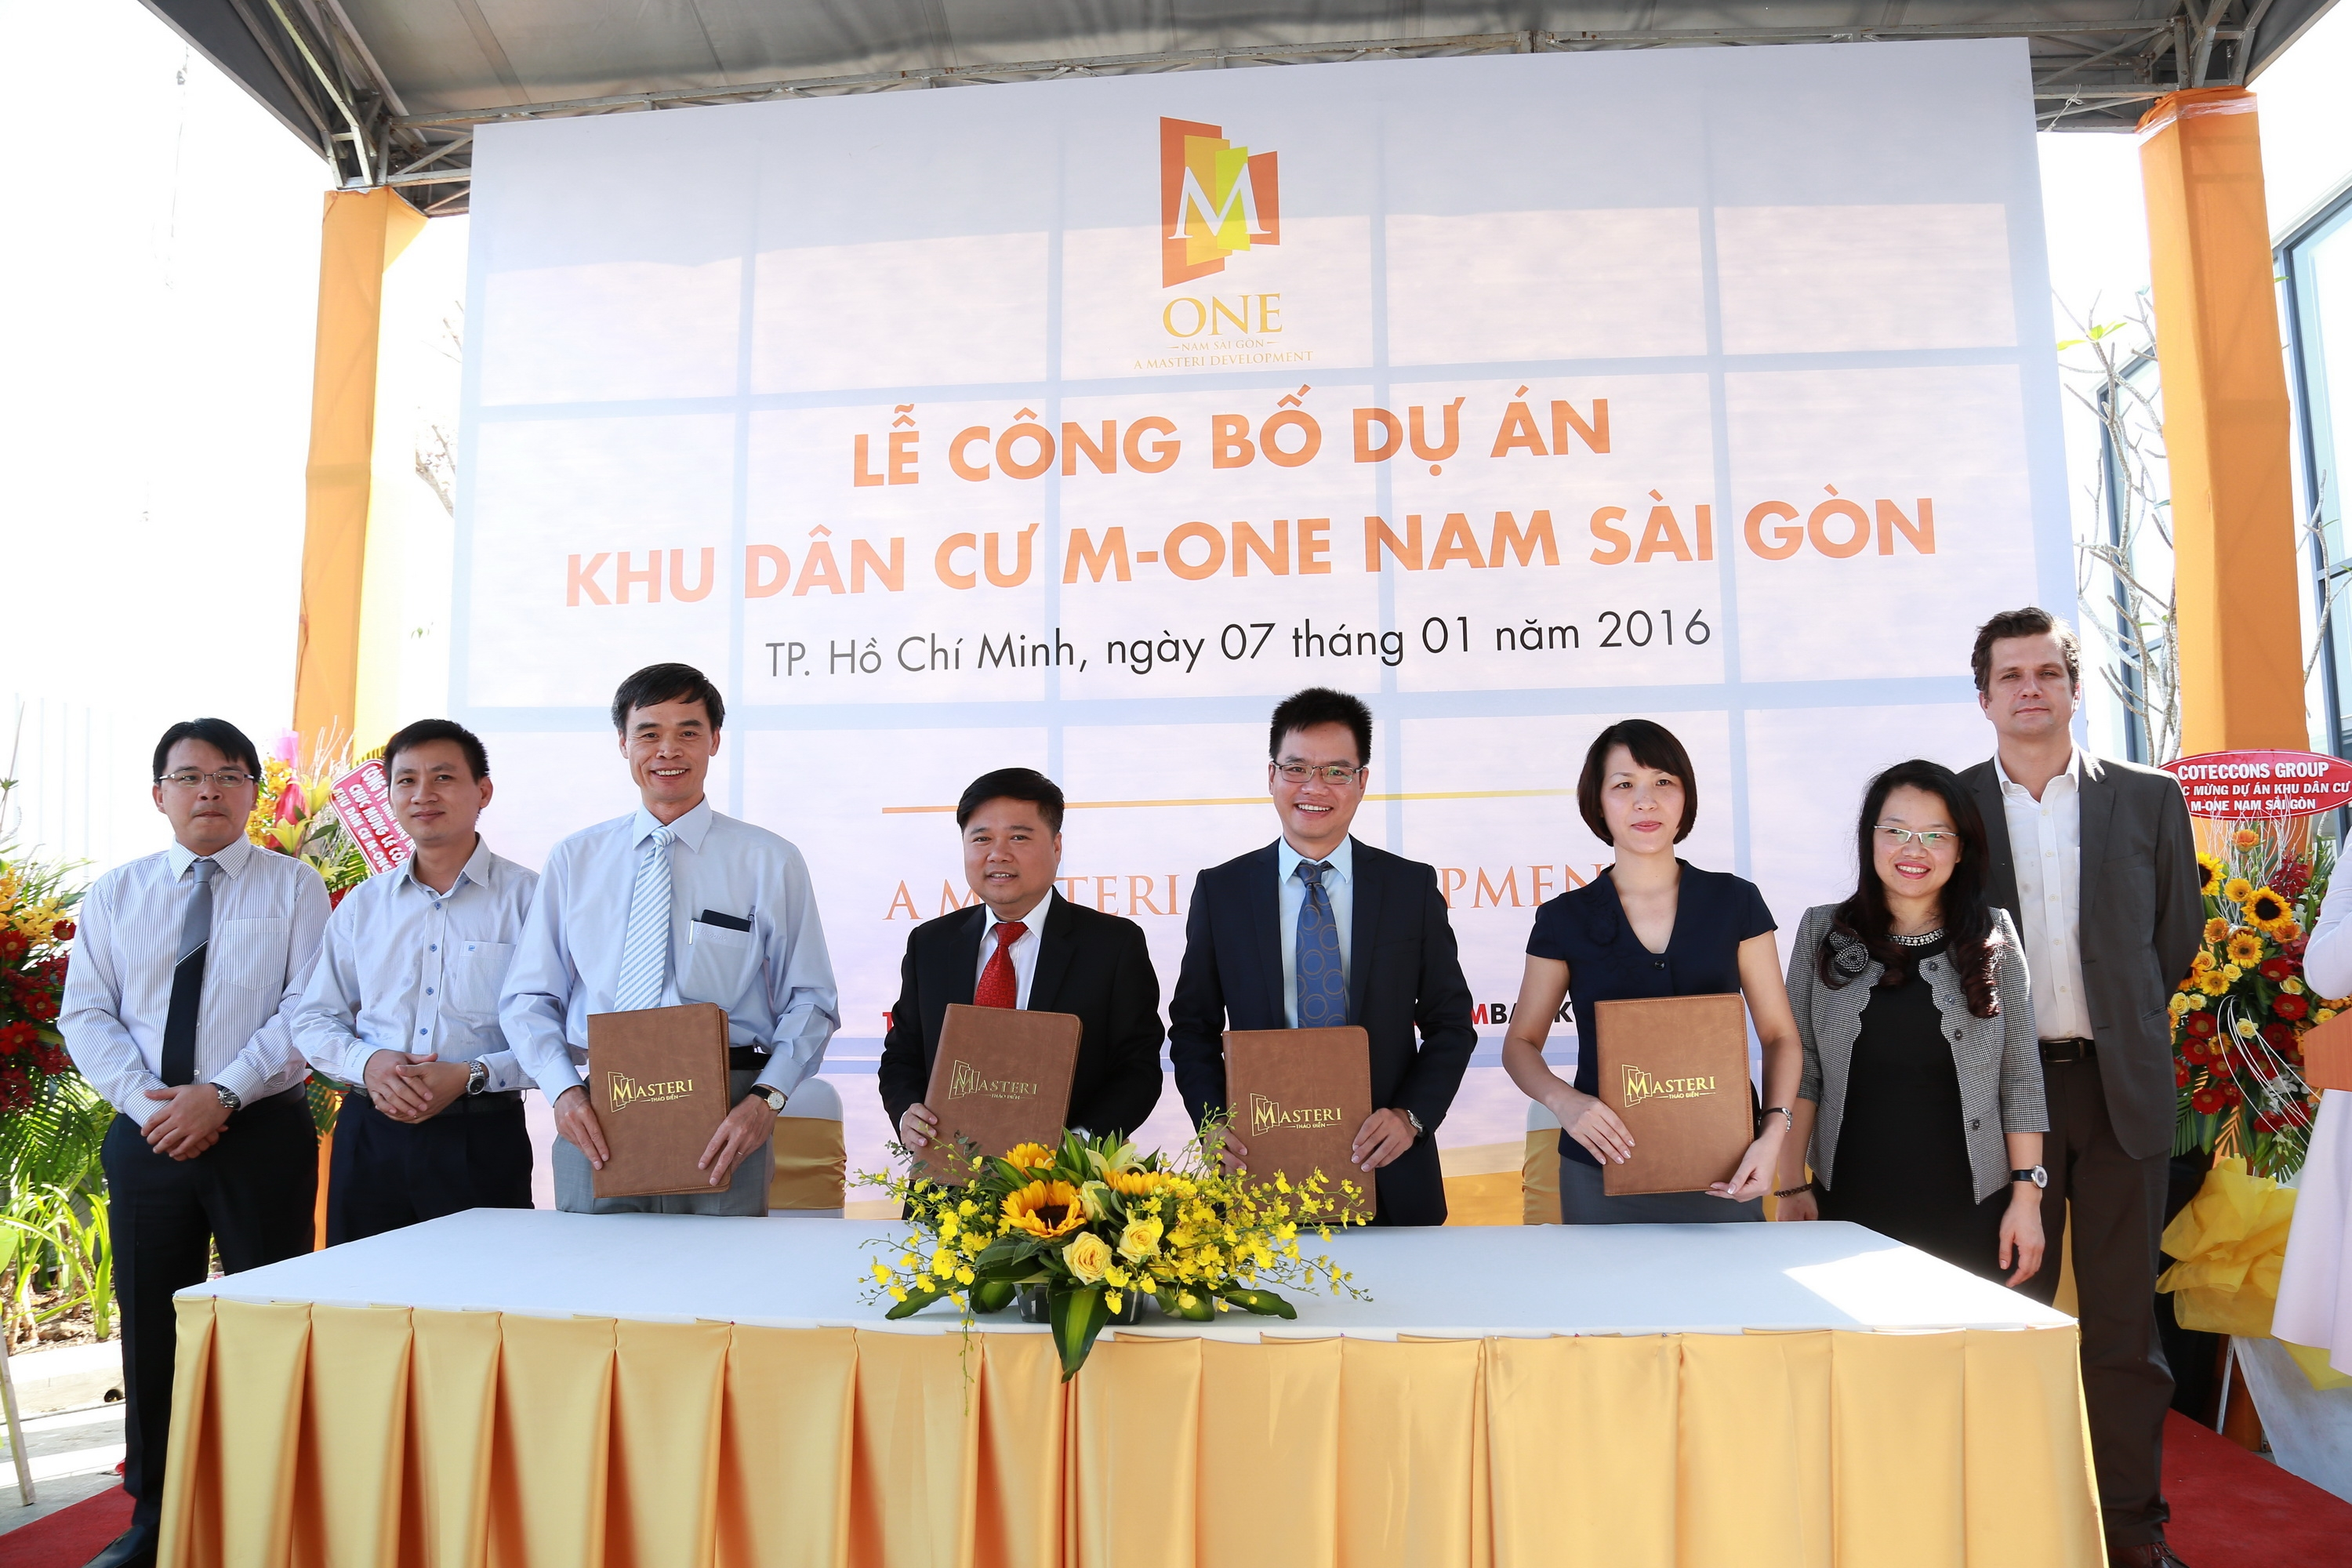 M-One Saigon project officially announced